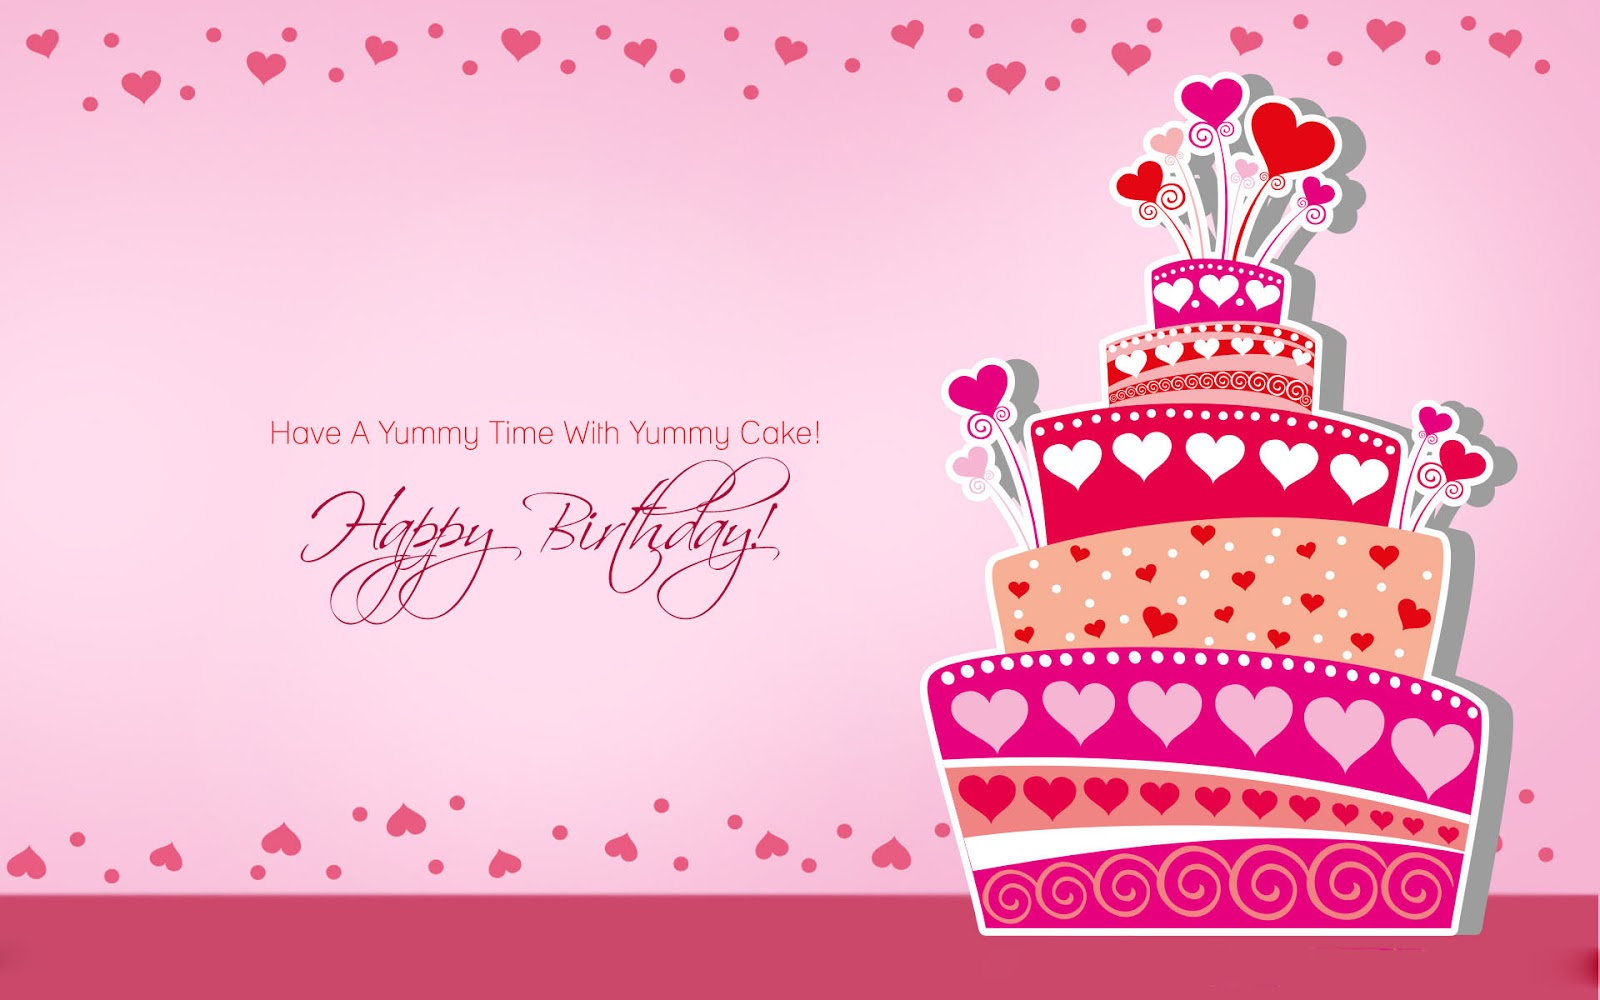 Love You Birthday Wallpaper : TOP 20 Happy Birthday HD Wallpapers Pictures Happy Birthday collection